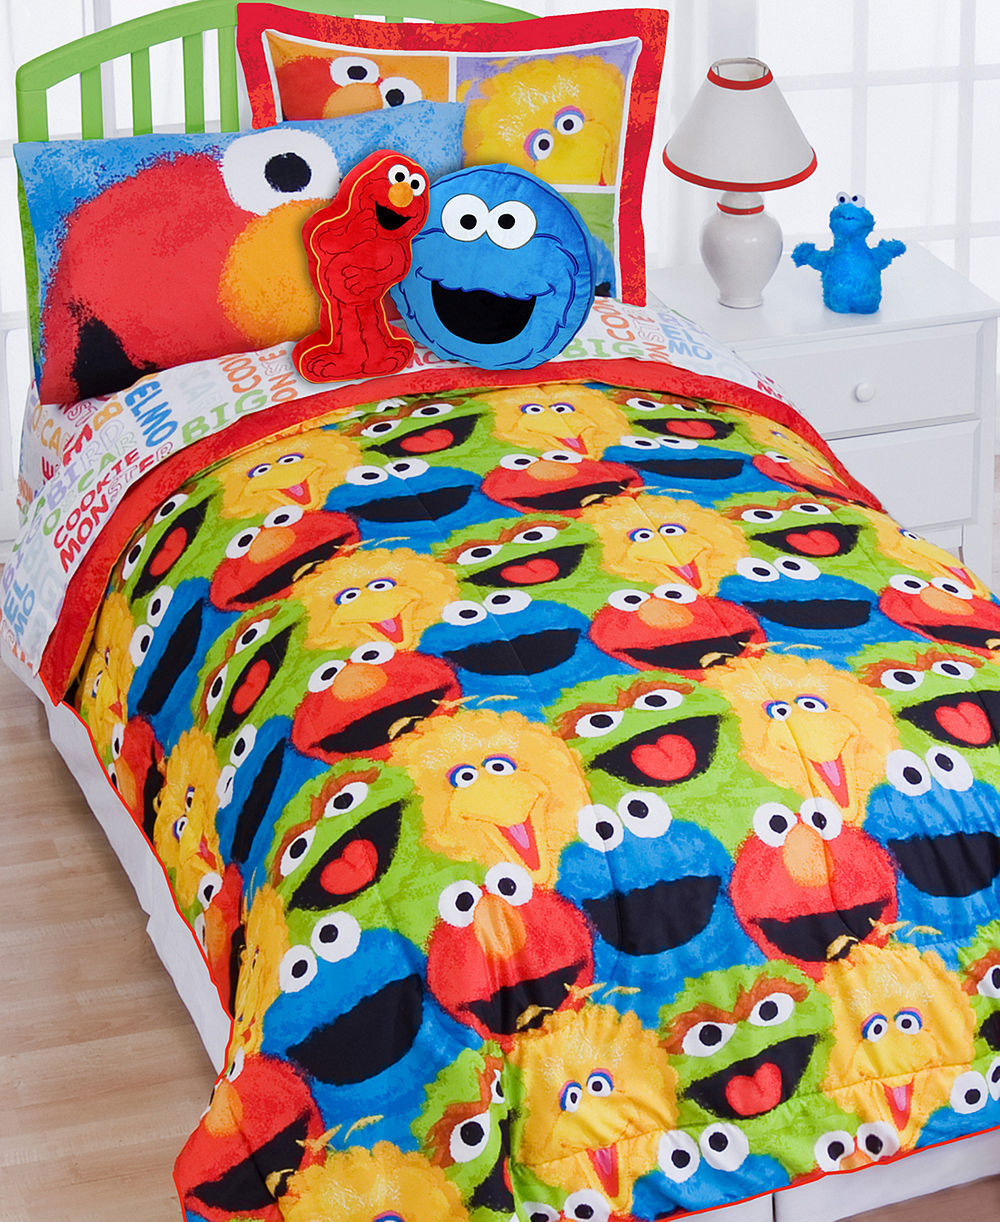 Bubble Guppies Bedding | Bubble Guppie Bedding | Mario Brothers Bedding